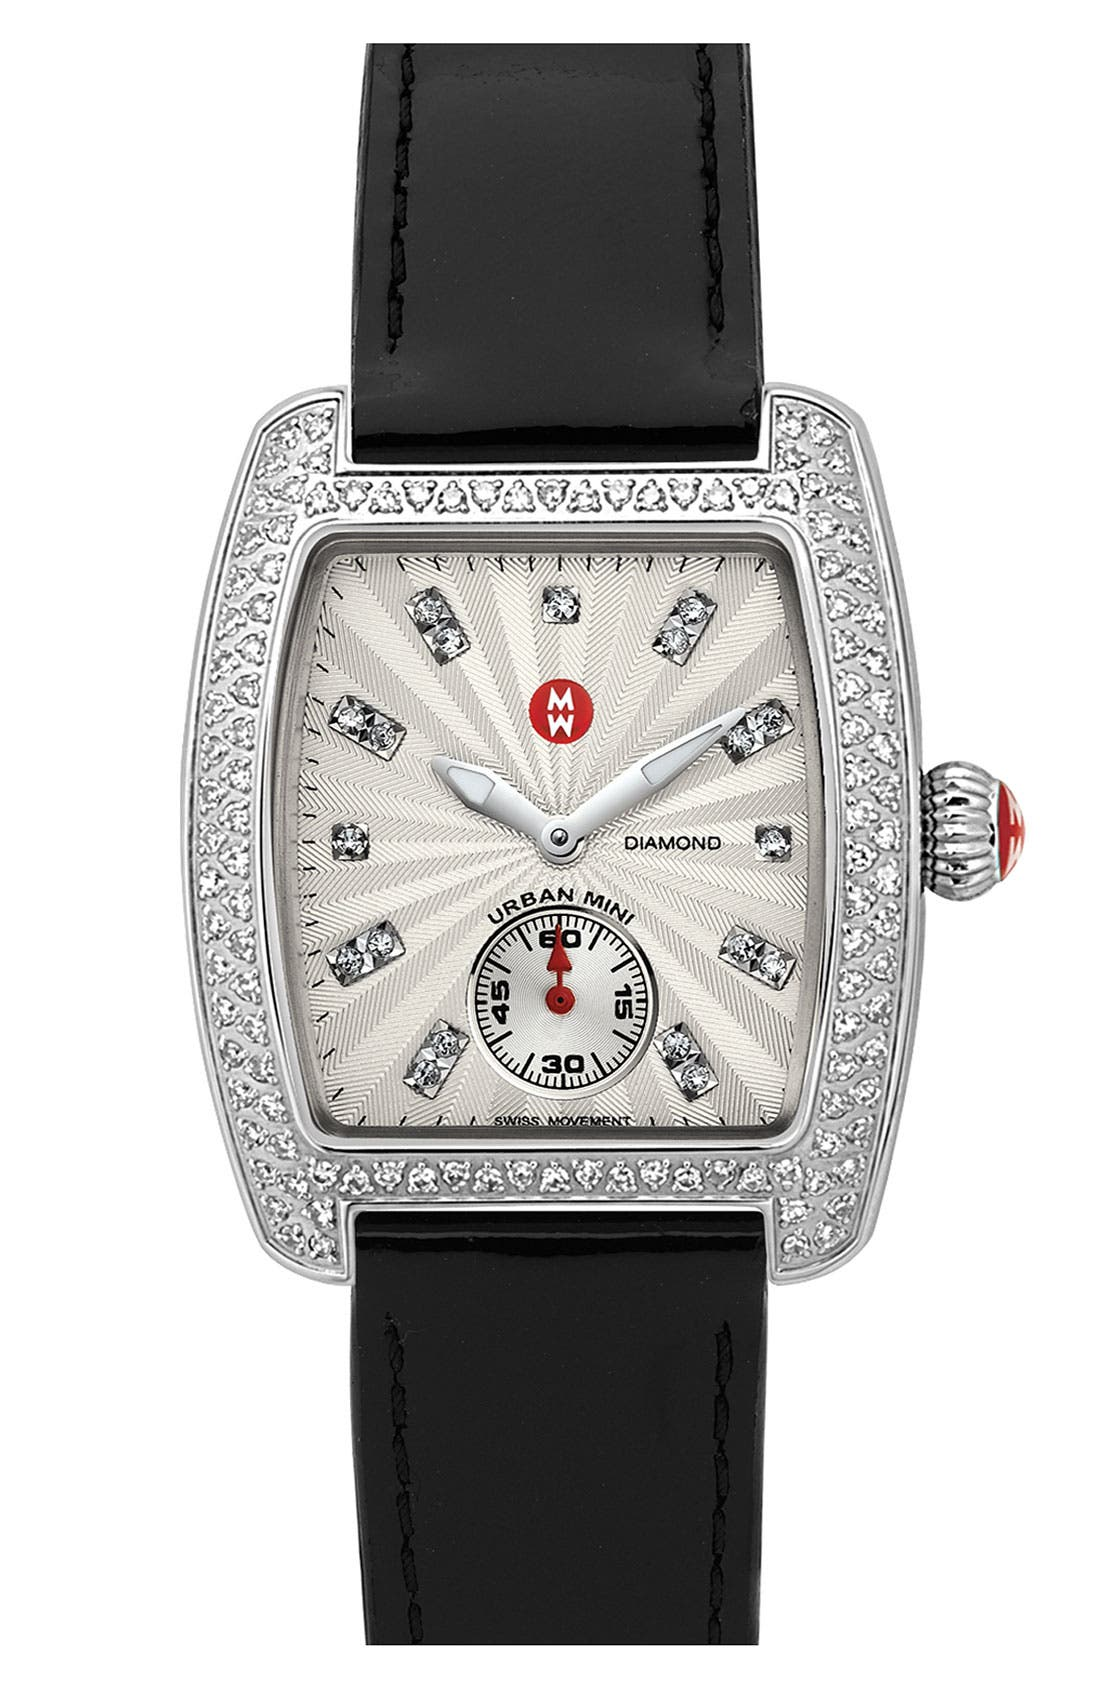 Alternate Image 1 Selected - MICHELE 'Urban Mini Diamond' Diamond Dial Watch Case & 16mm Black Patent Leather Strap